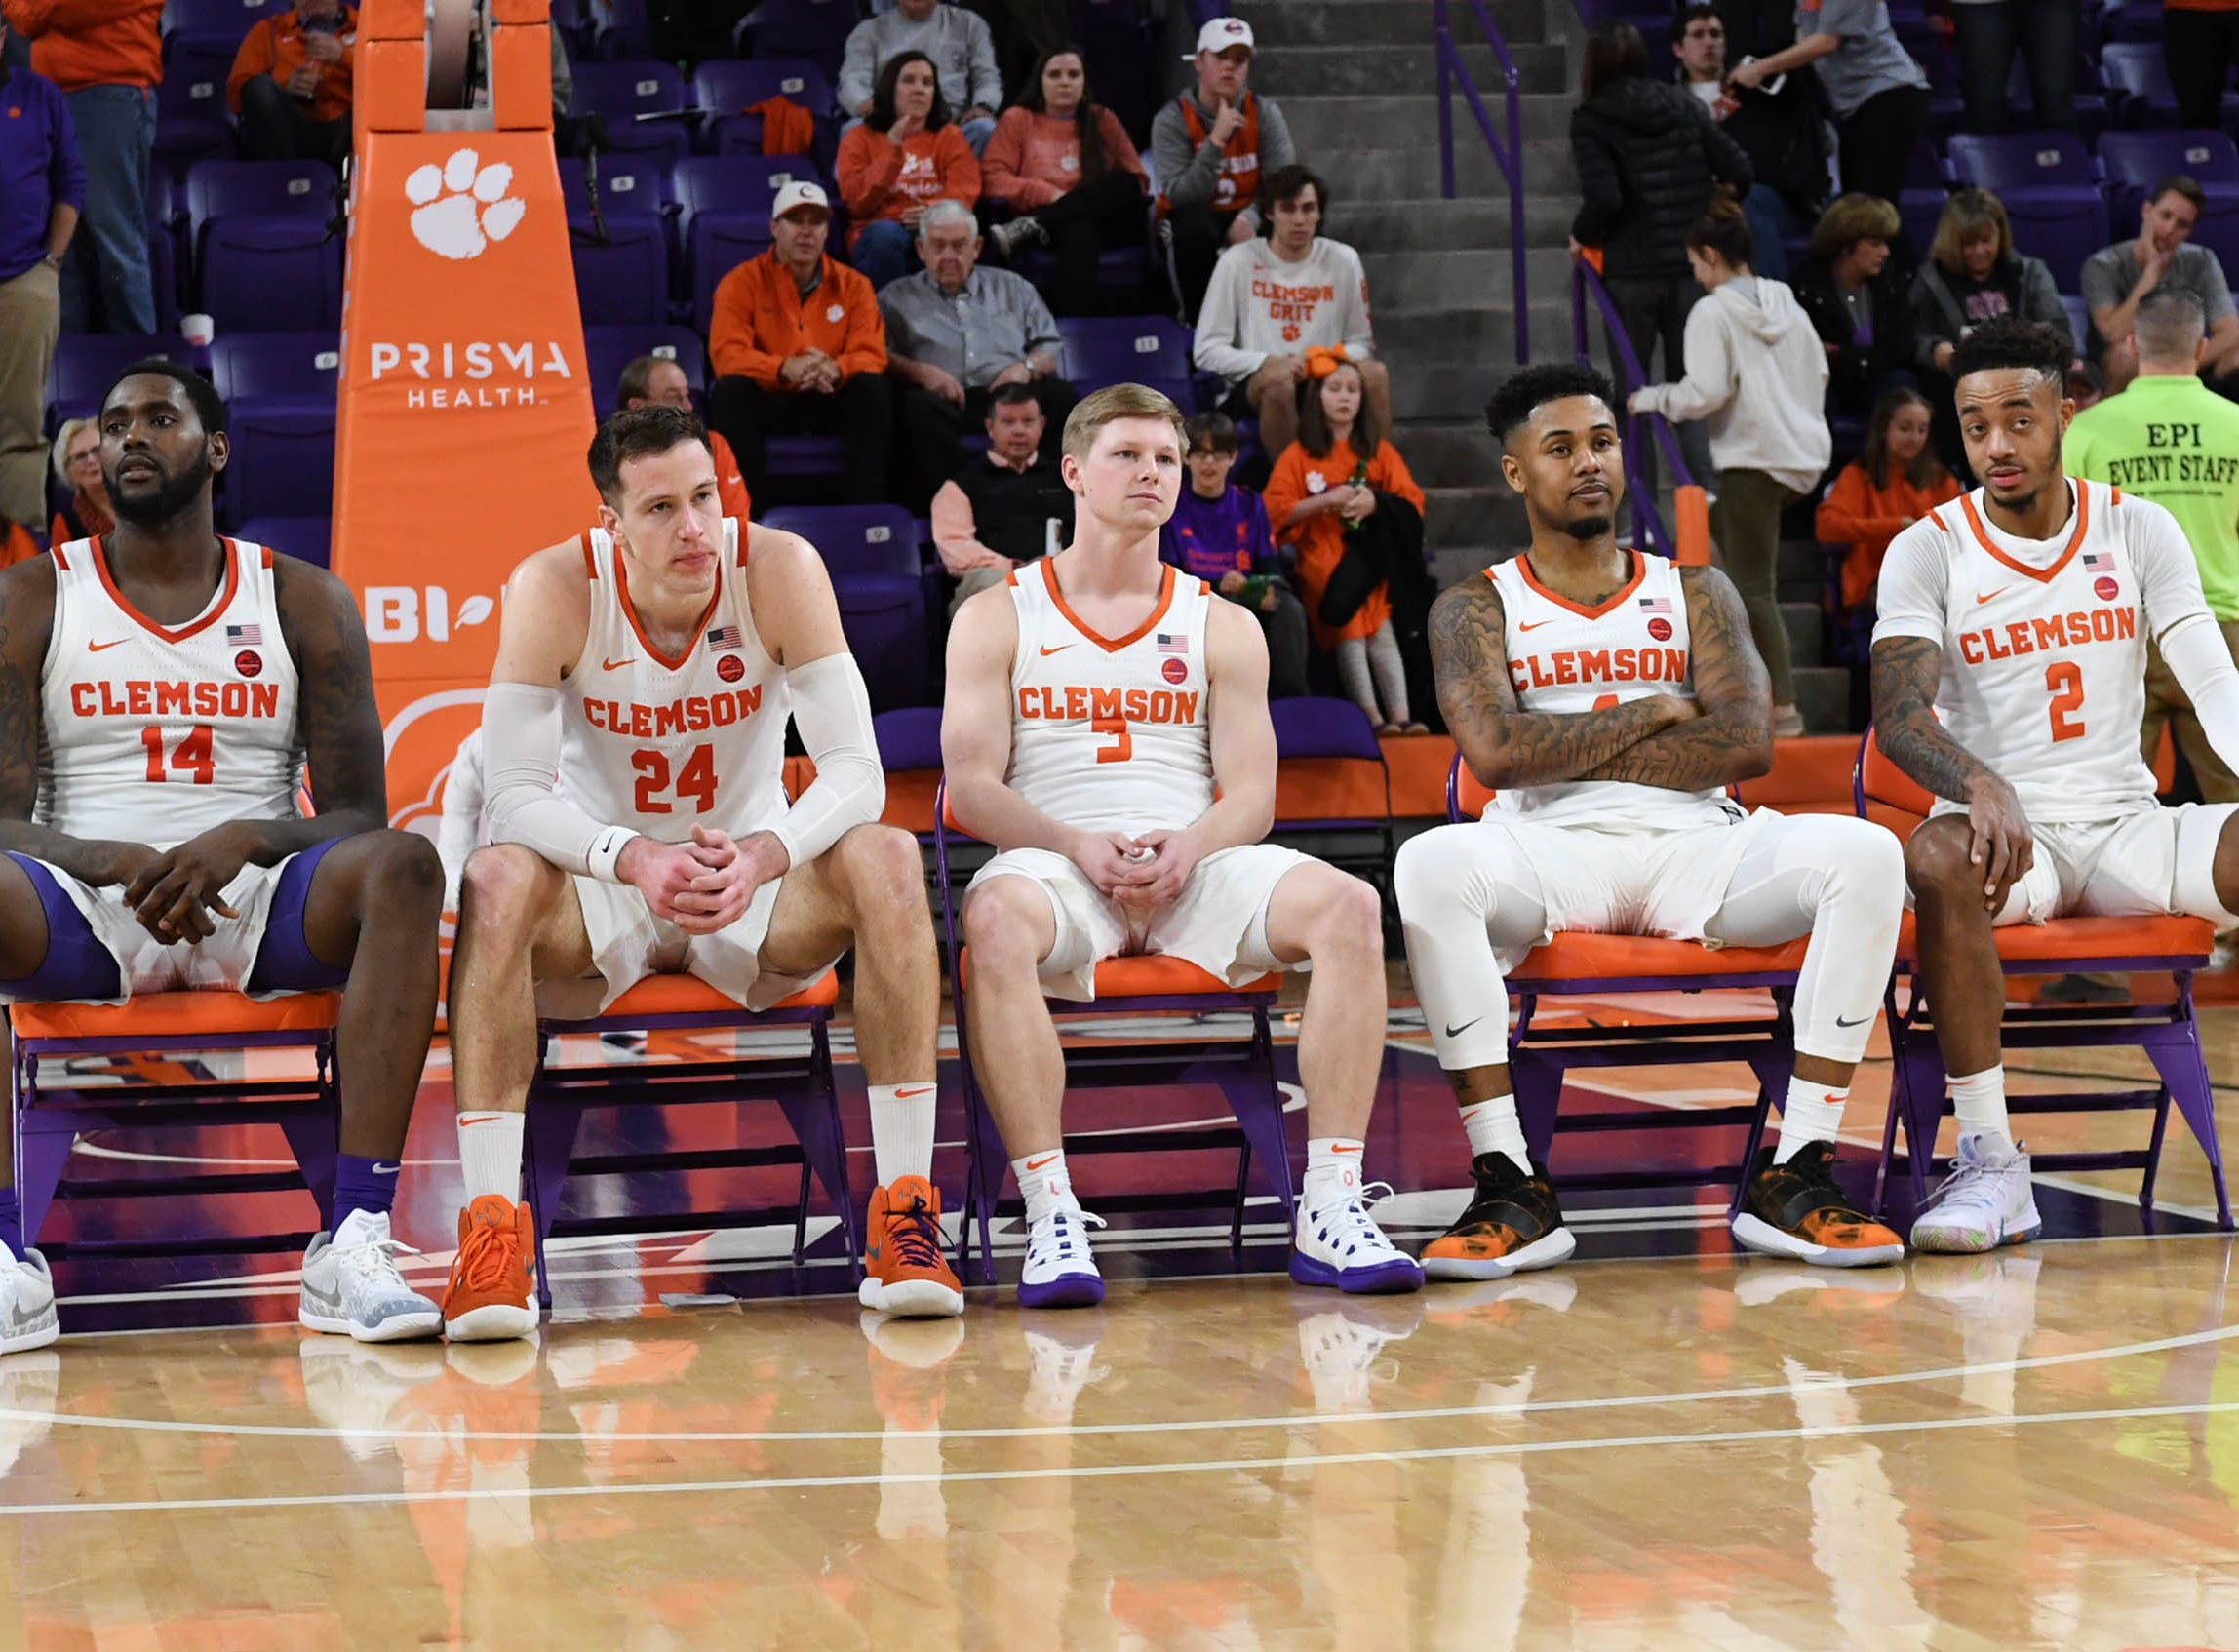 Clemson seniors, from left, forward Elijah Thomas (14), forward David Skara (24), guard Lyles Davis (3), guard Shelton Mitchell (4), and guard Marcquise Reed (2) are honored after the game against Syracuse Saturday, March 9, 2019.